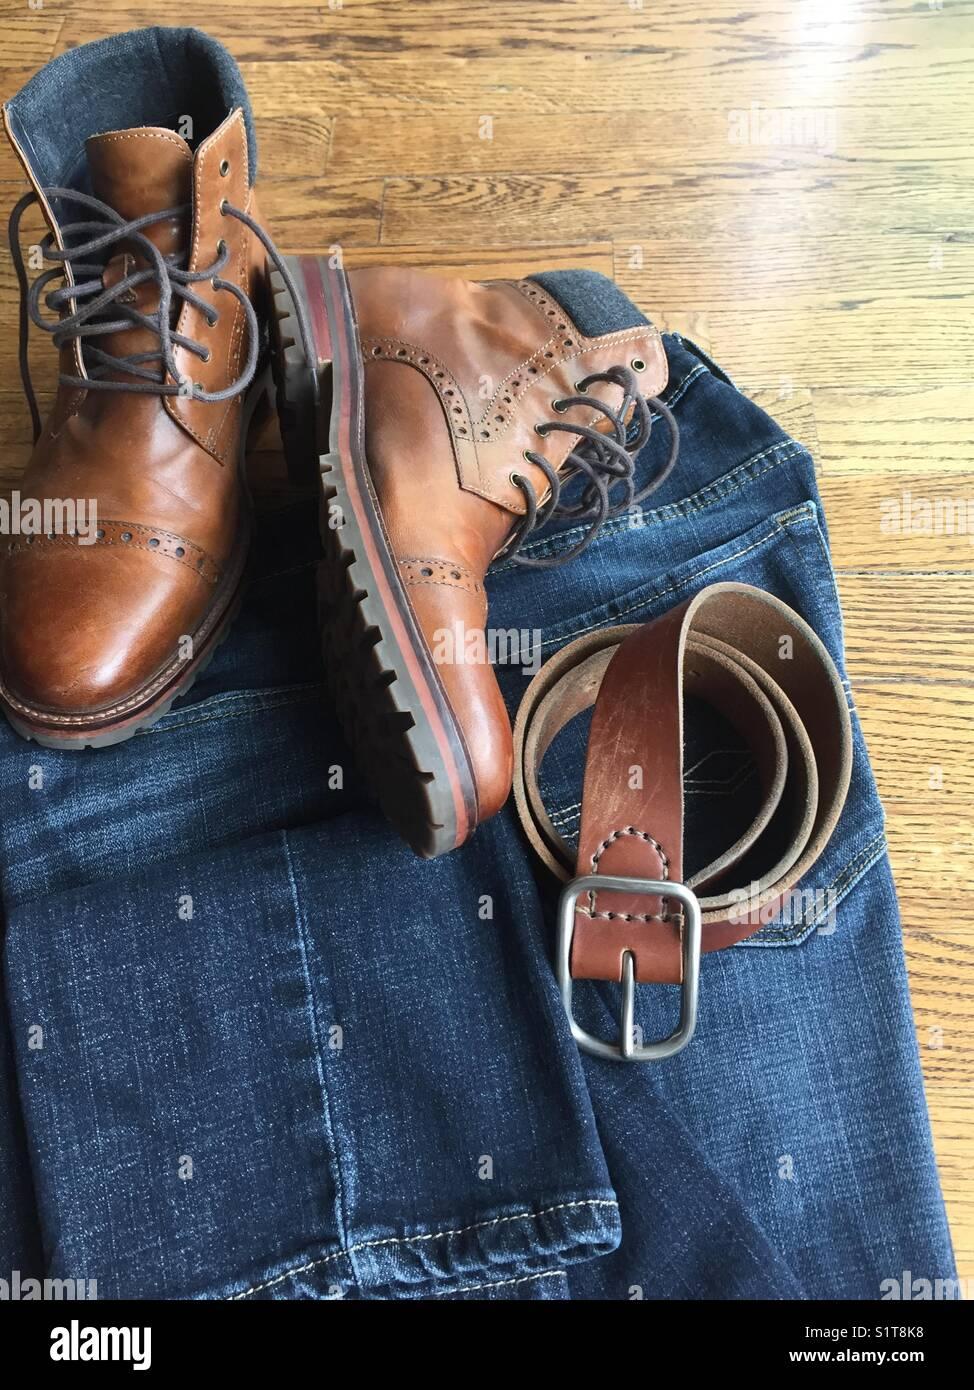 Men's jeans boots and belt Stock Photo: 310934940 Alamy